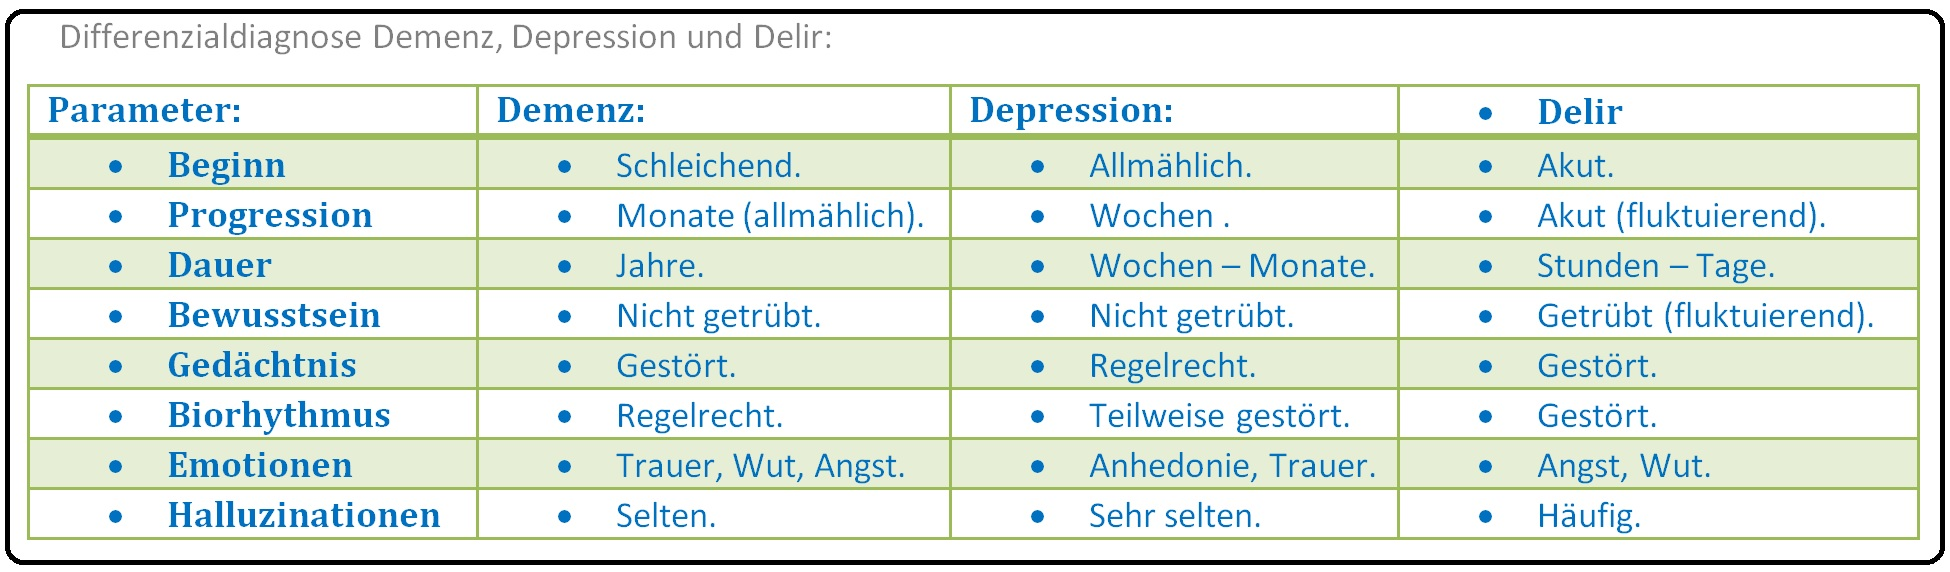 531 Differenzialdiagnose Demenz, Depression und Delir